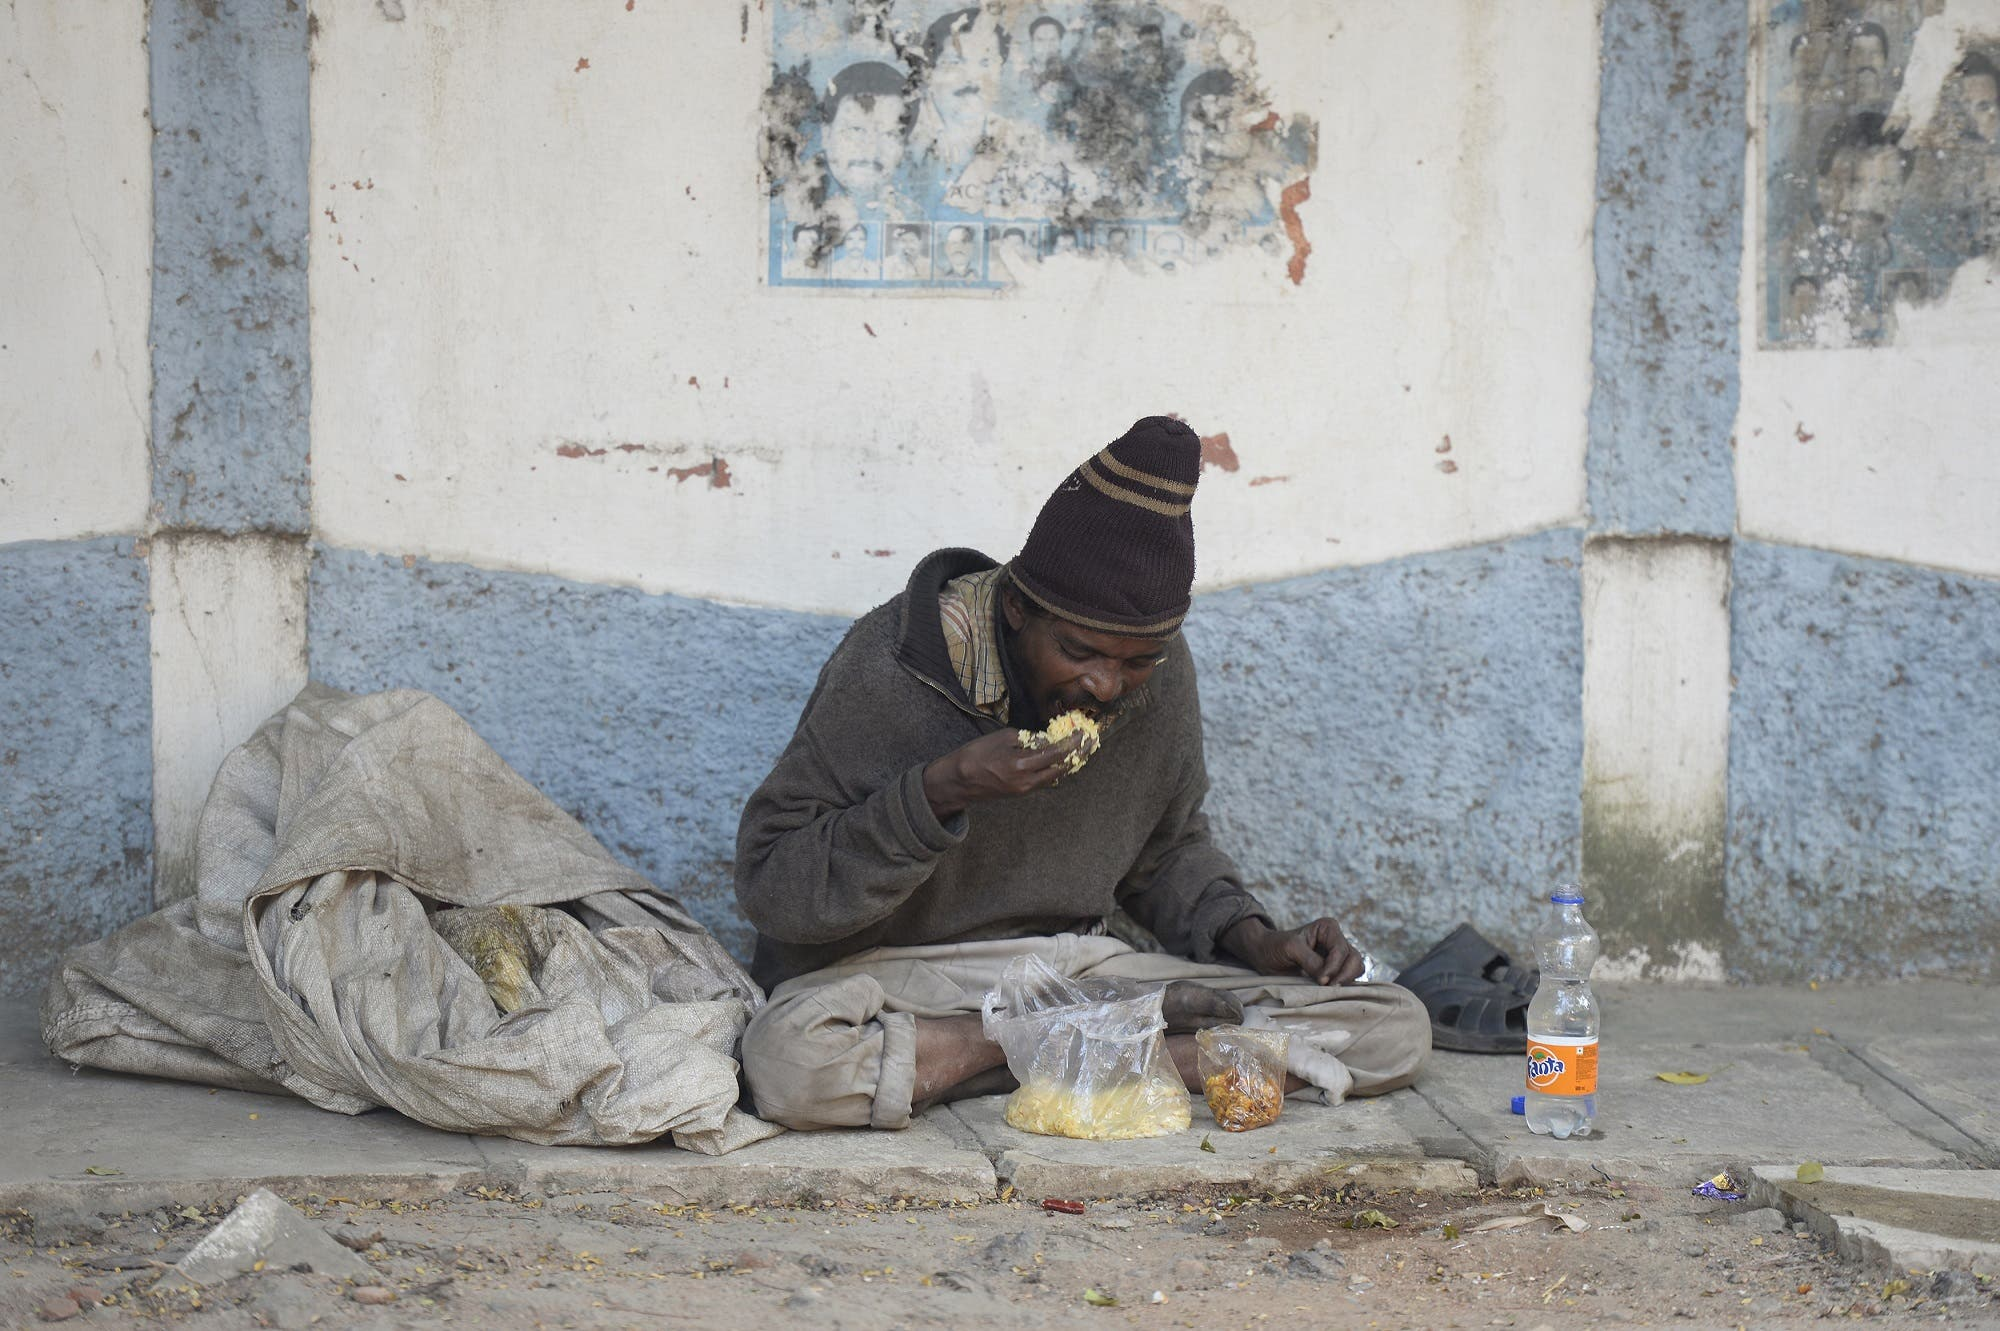 An Indian beggar eats food on the side of the road in Hyderabad on November 10, 2017. The city banned begging in public places ahead of a three-day summit that Ivanka Trump is due to attend, police said November 10. (AFP)